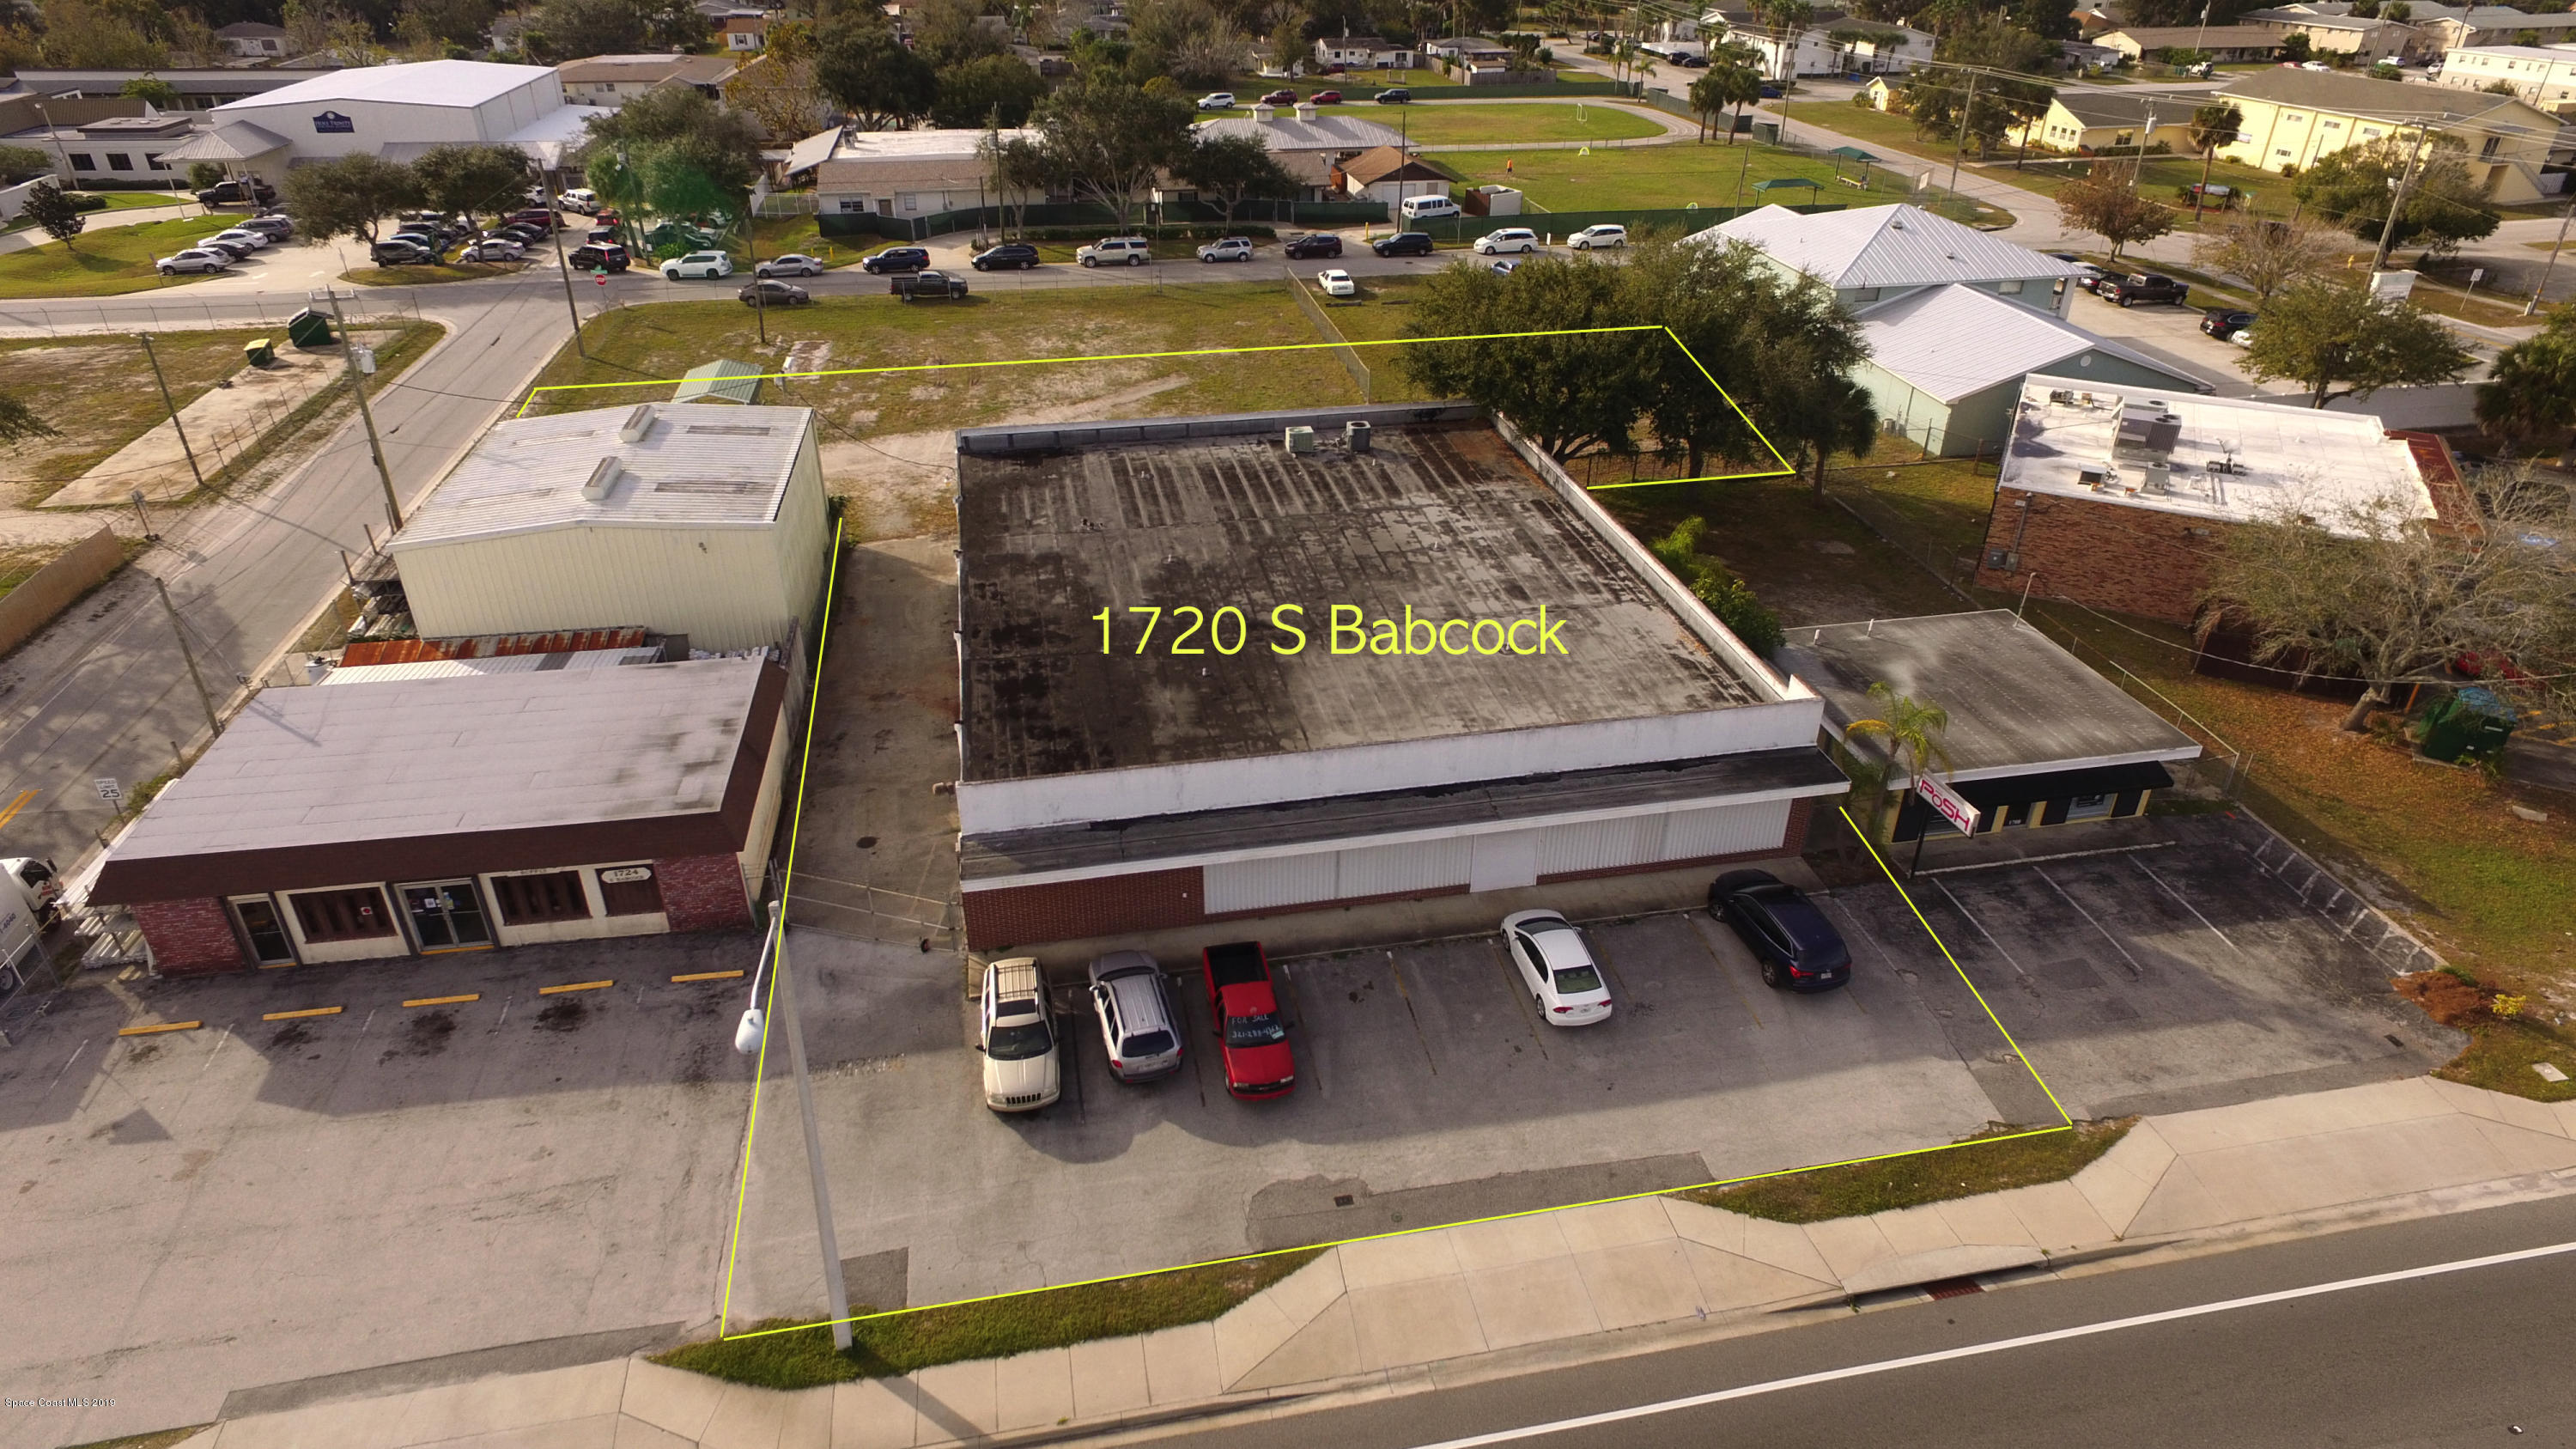 Commercial for Rent at 1720 S Babcock Melbourne, Florida 32901 United States